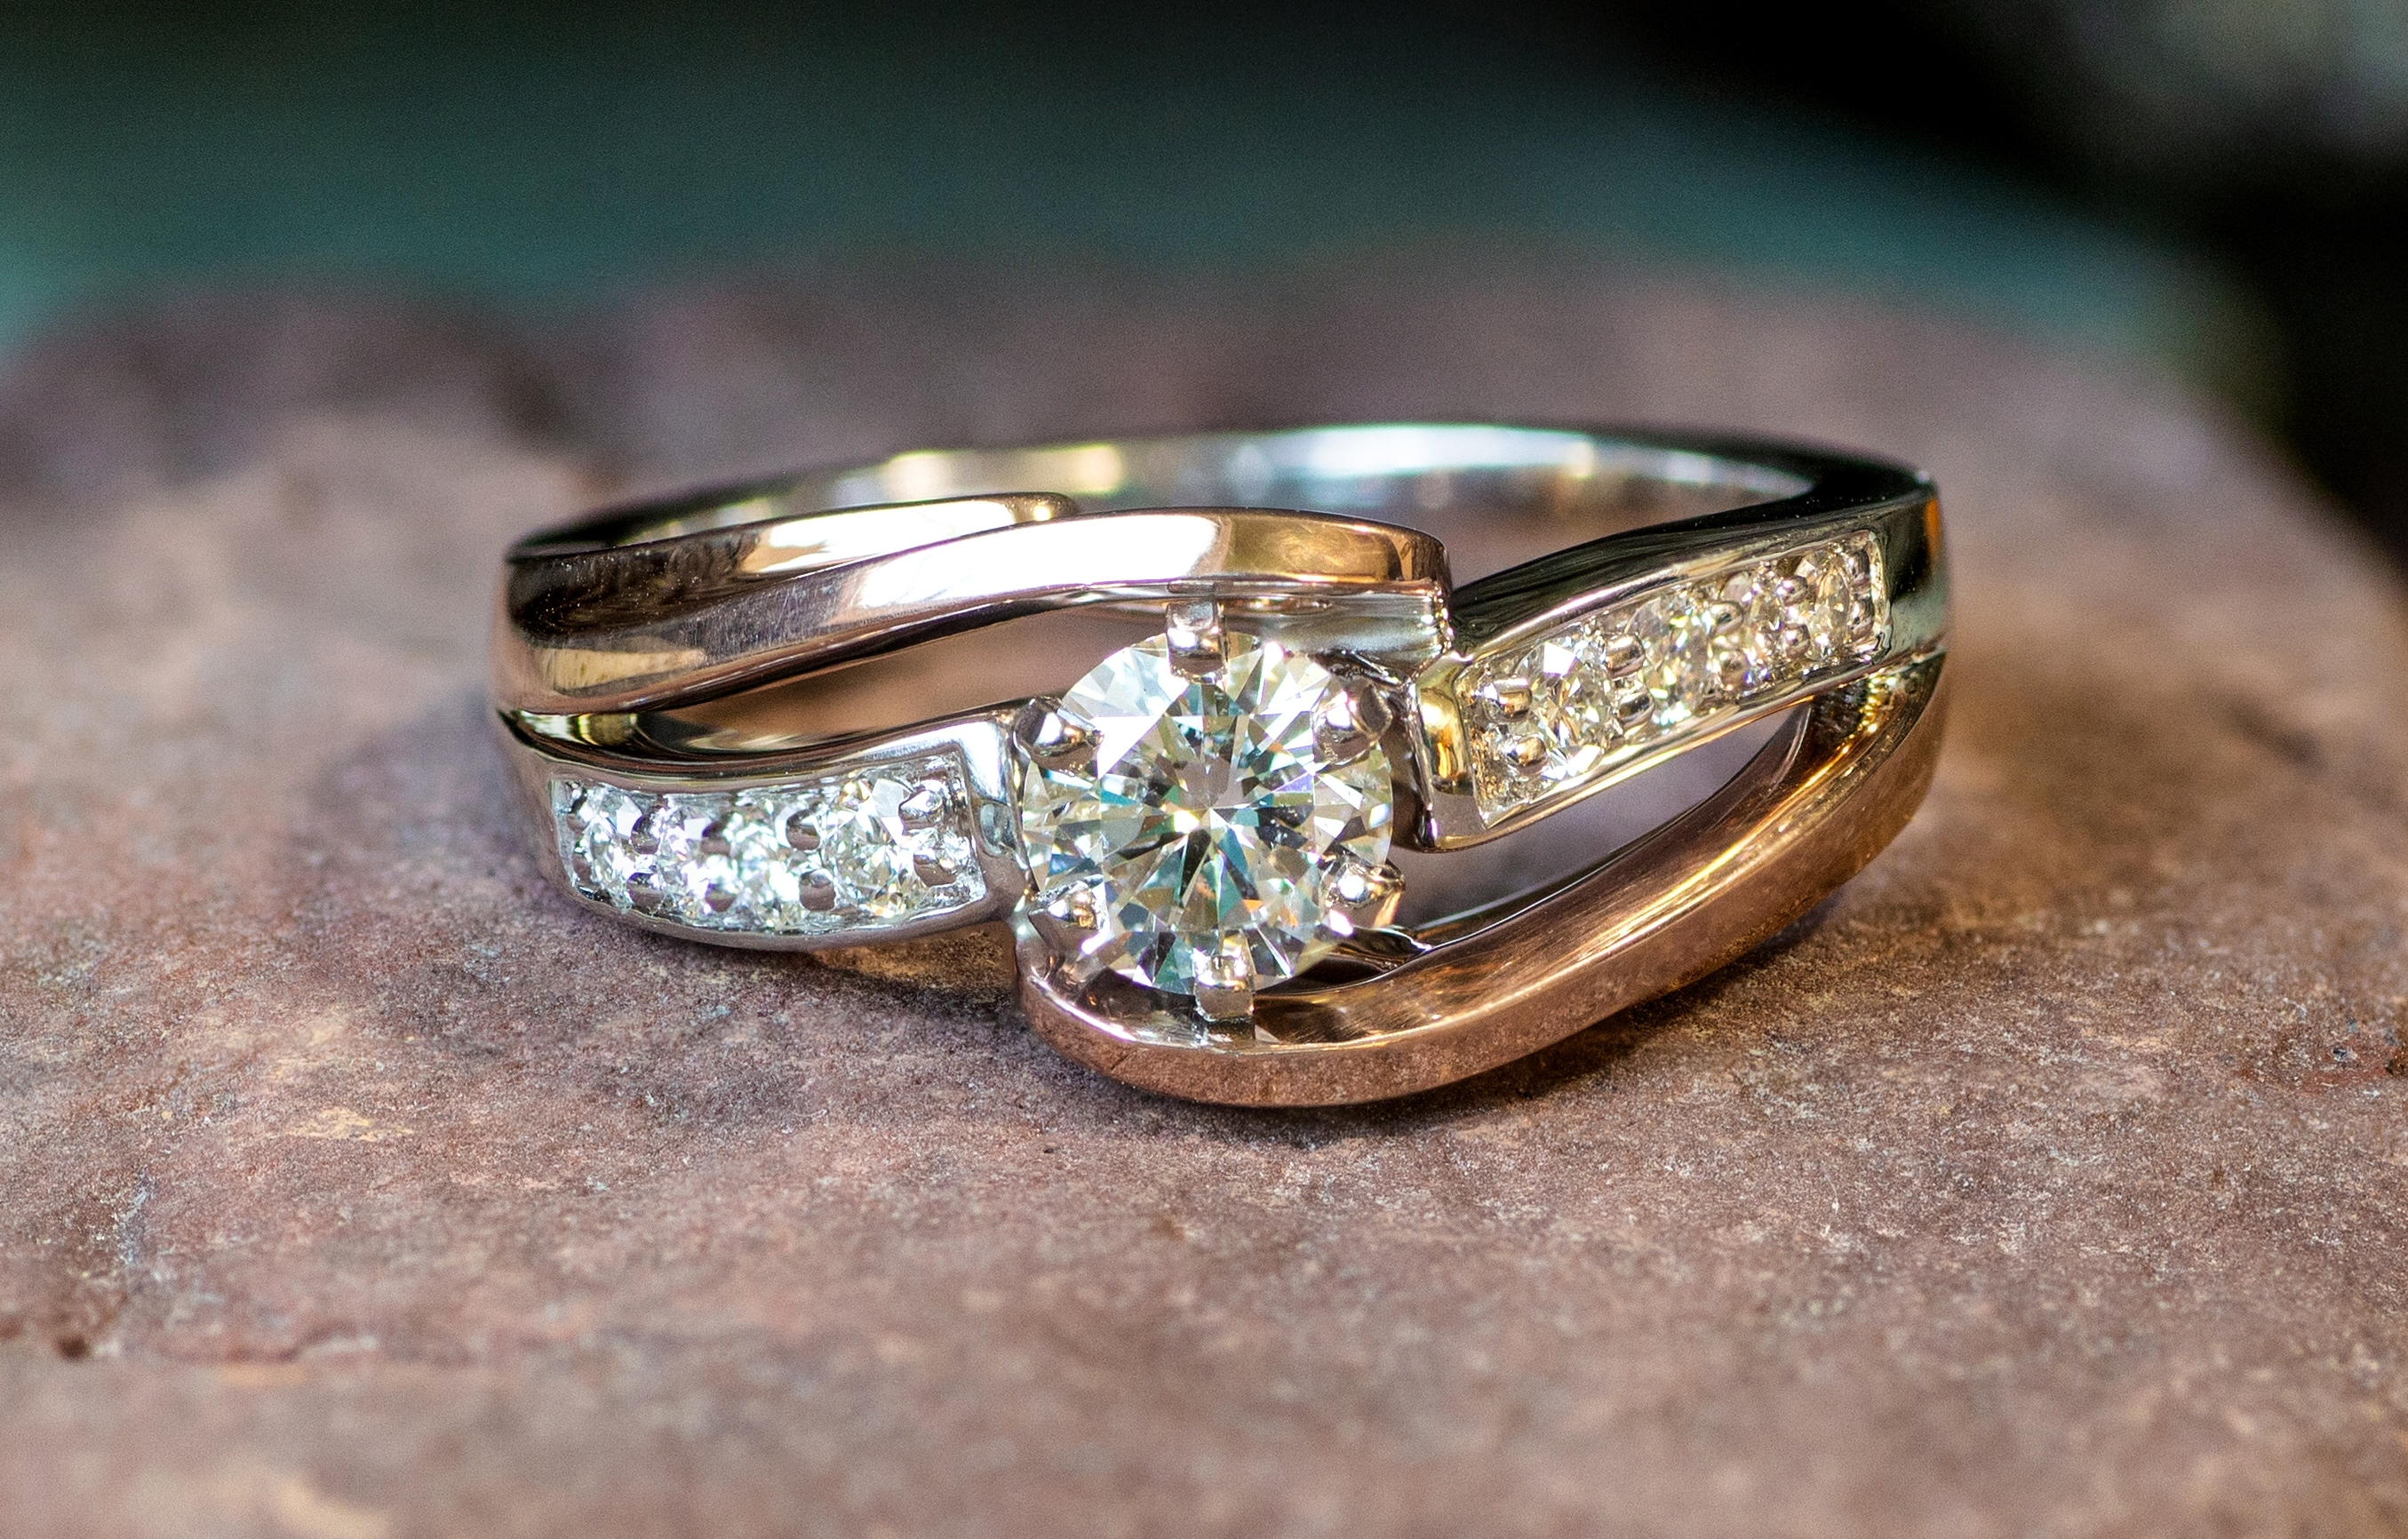 Diamonds in 14kt White and Rose Gold wedding ring.